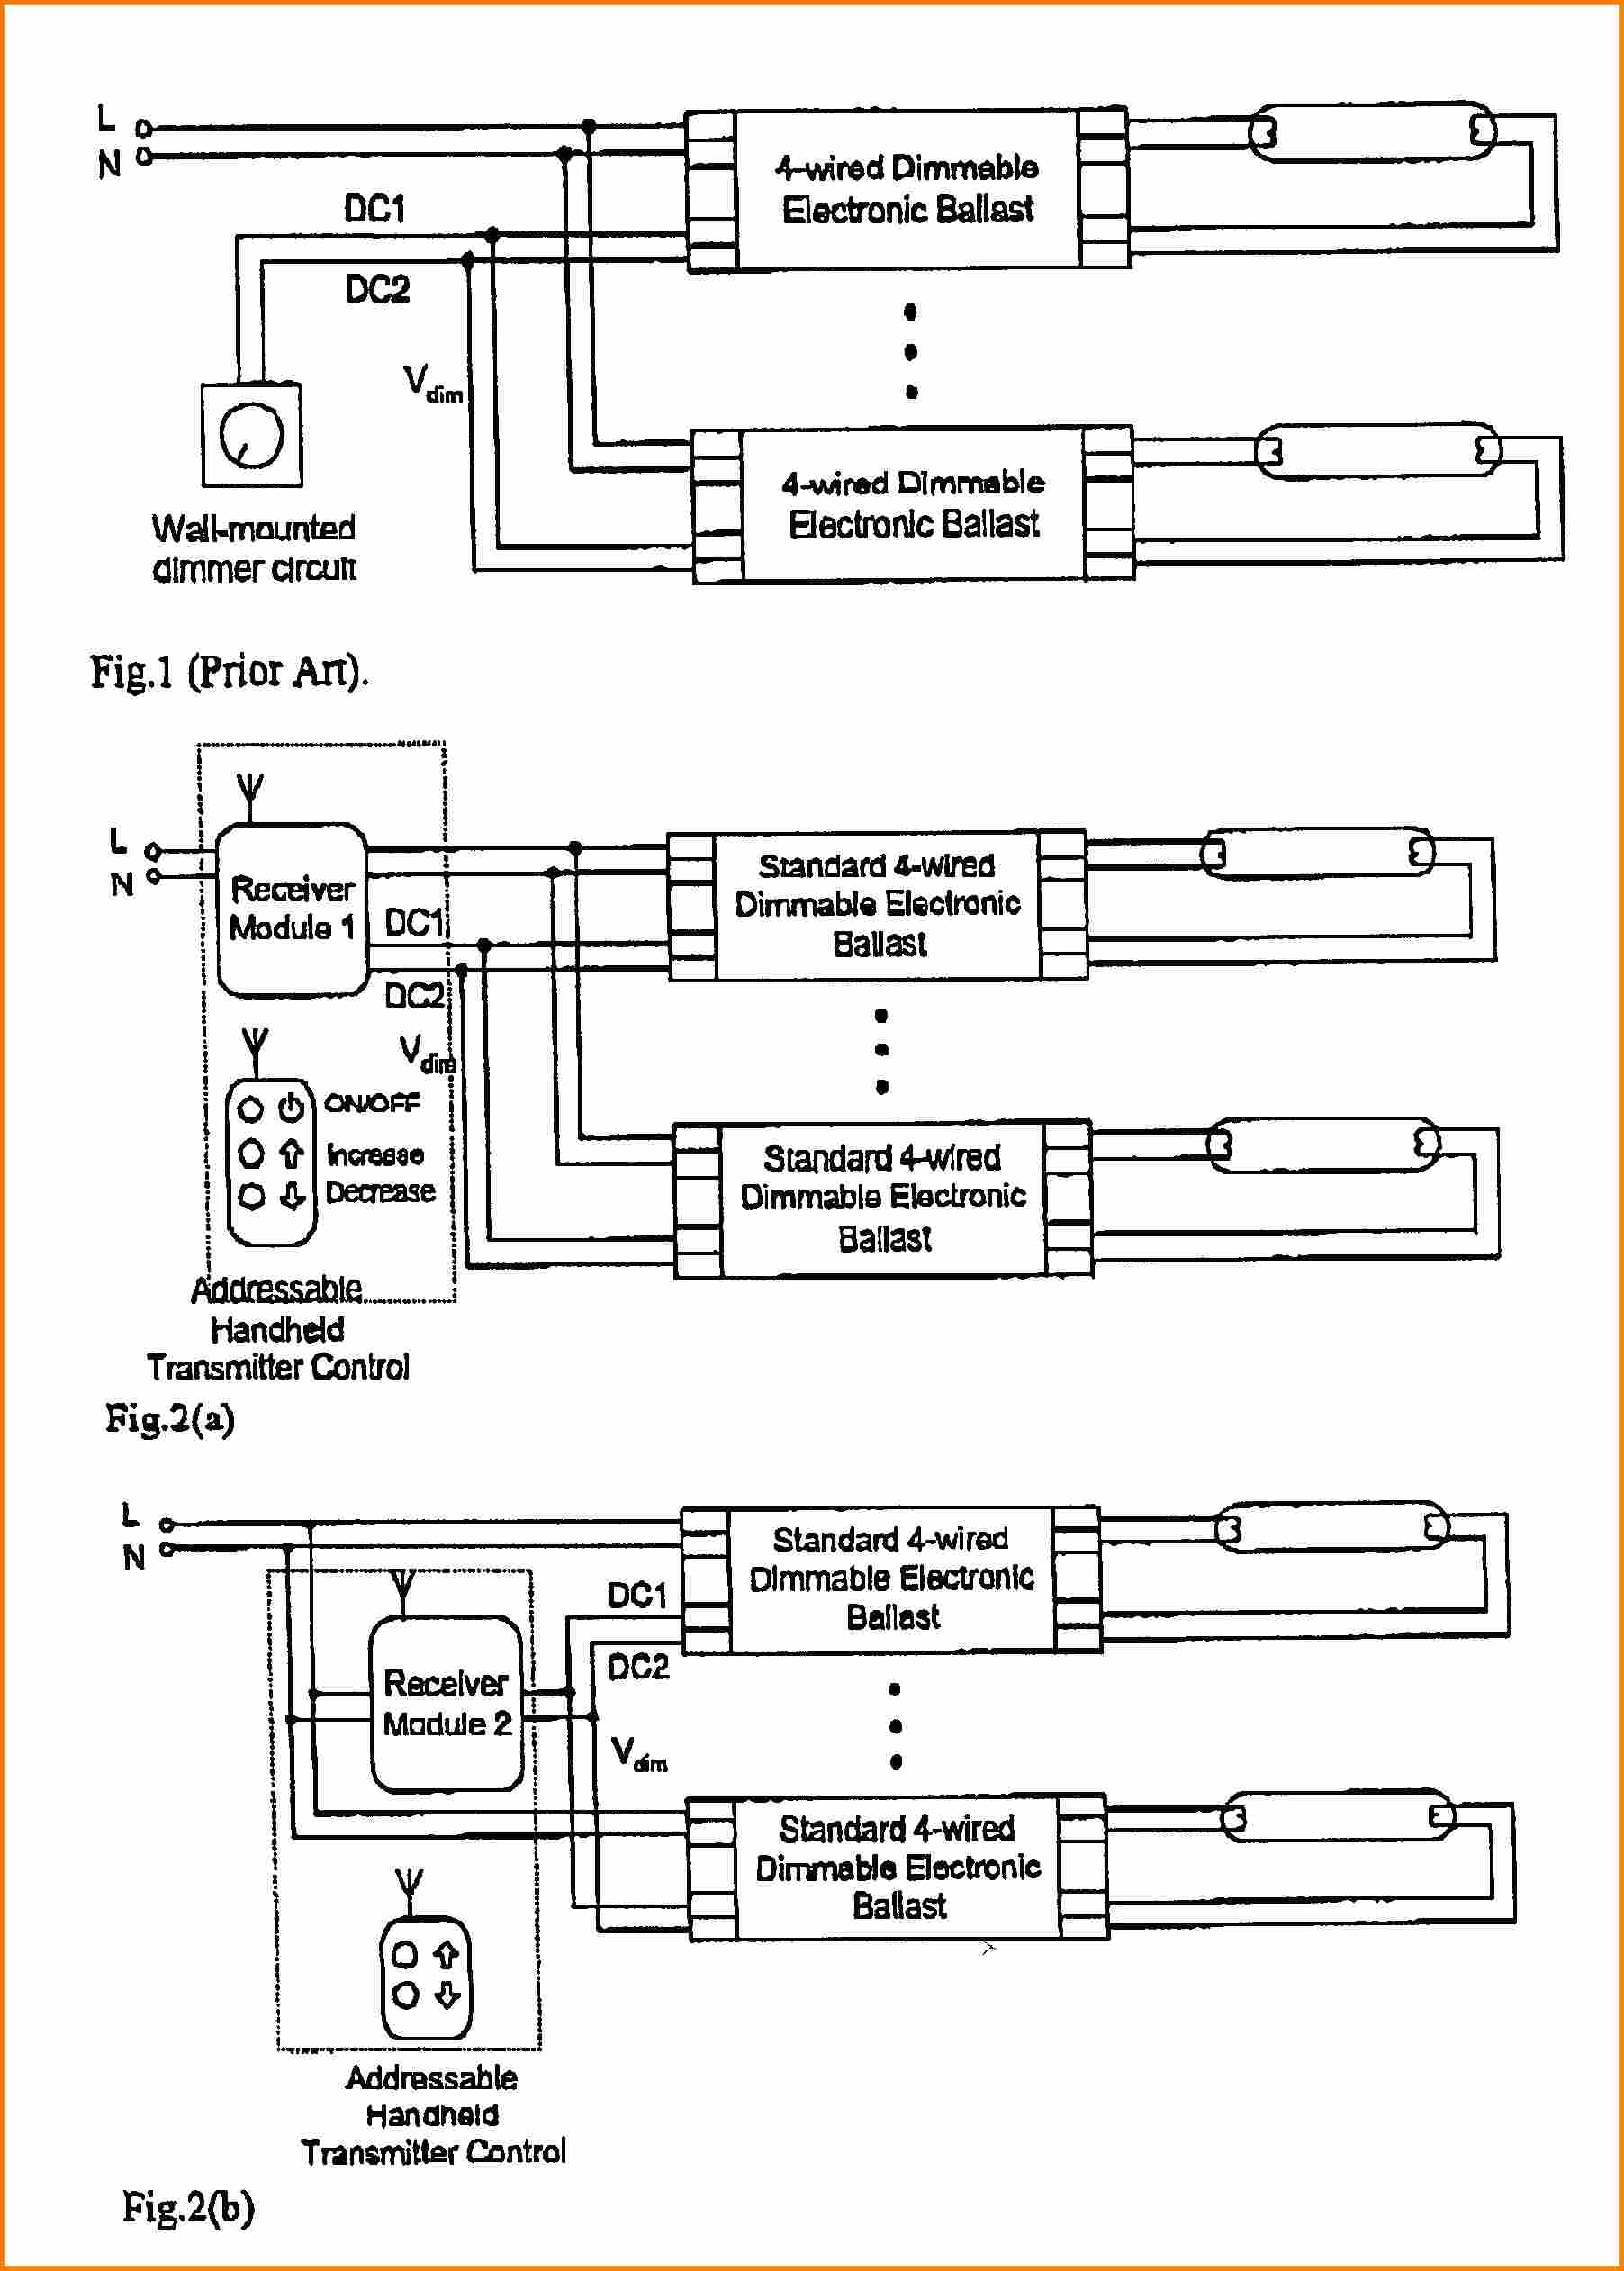 V Dimming Ballast Wiring Diagram V Dimming Ballast Wiring Diagram Download Lutron Dimmer Switch Wiring Diagram Inspirational Lutron Dimmer E on Lutron Dimming Ballast Wiring Diagram